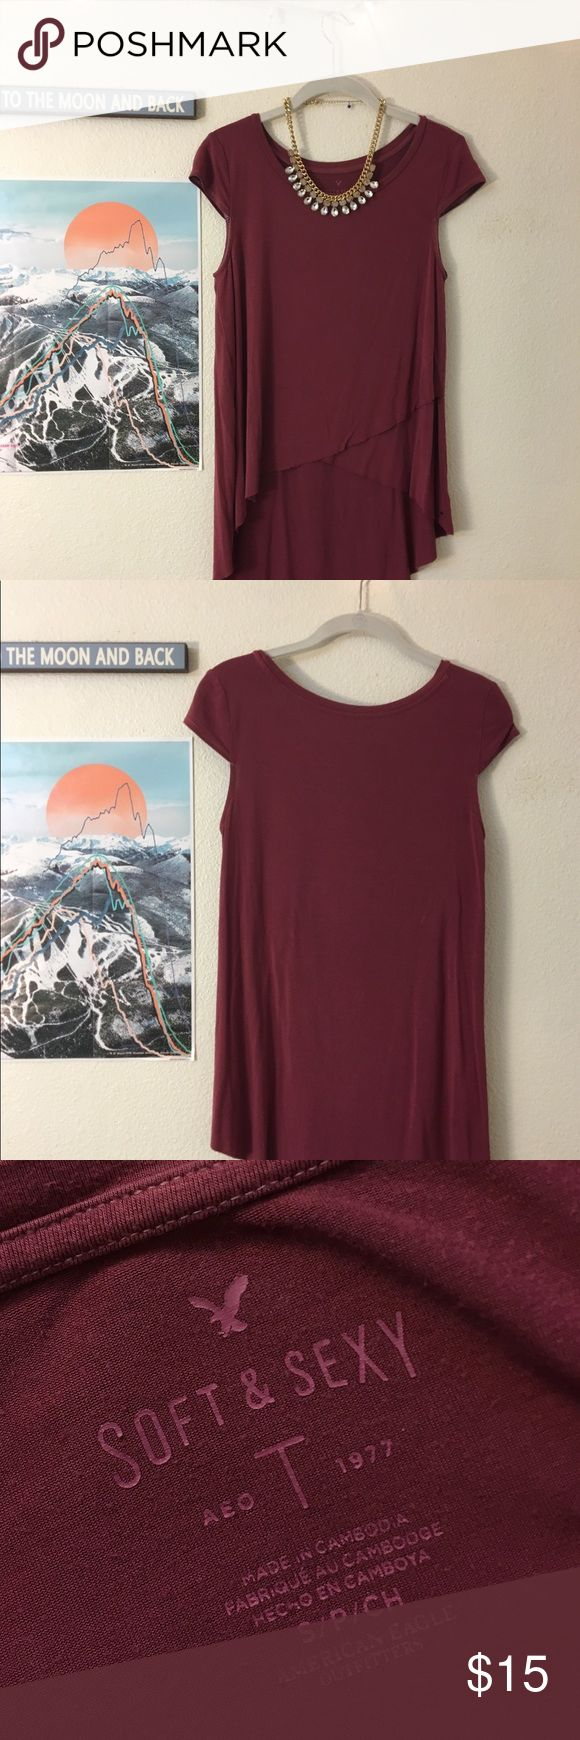 Soft and sexy AE top Lightly worn, great quality. Soft and sexy American Eagle Material.  Maroon/burgundy color American Eagle Outfitters Tops Tees - Short Sleeve